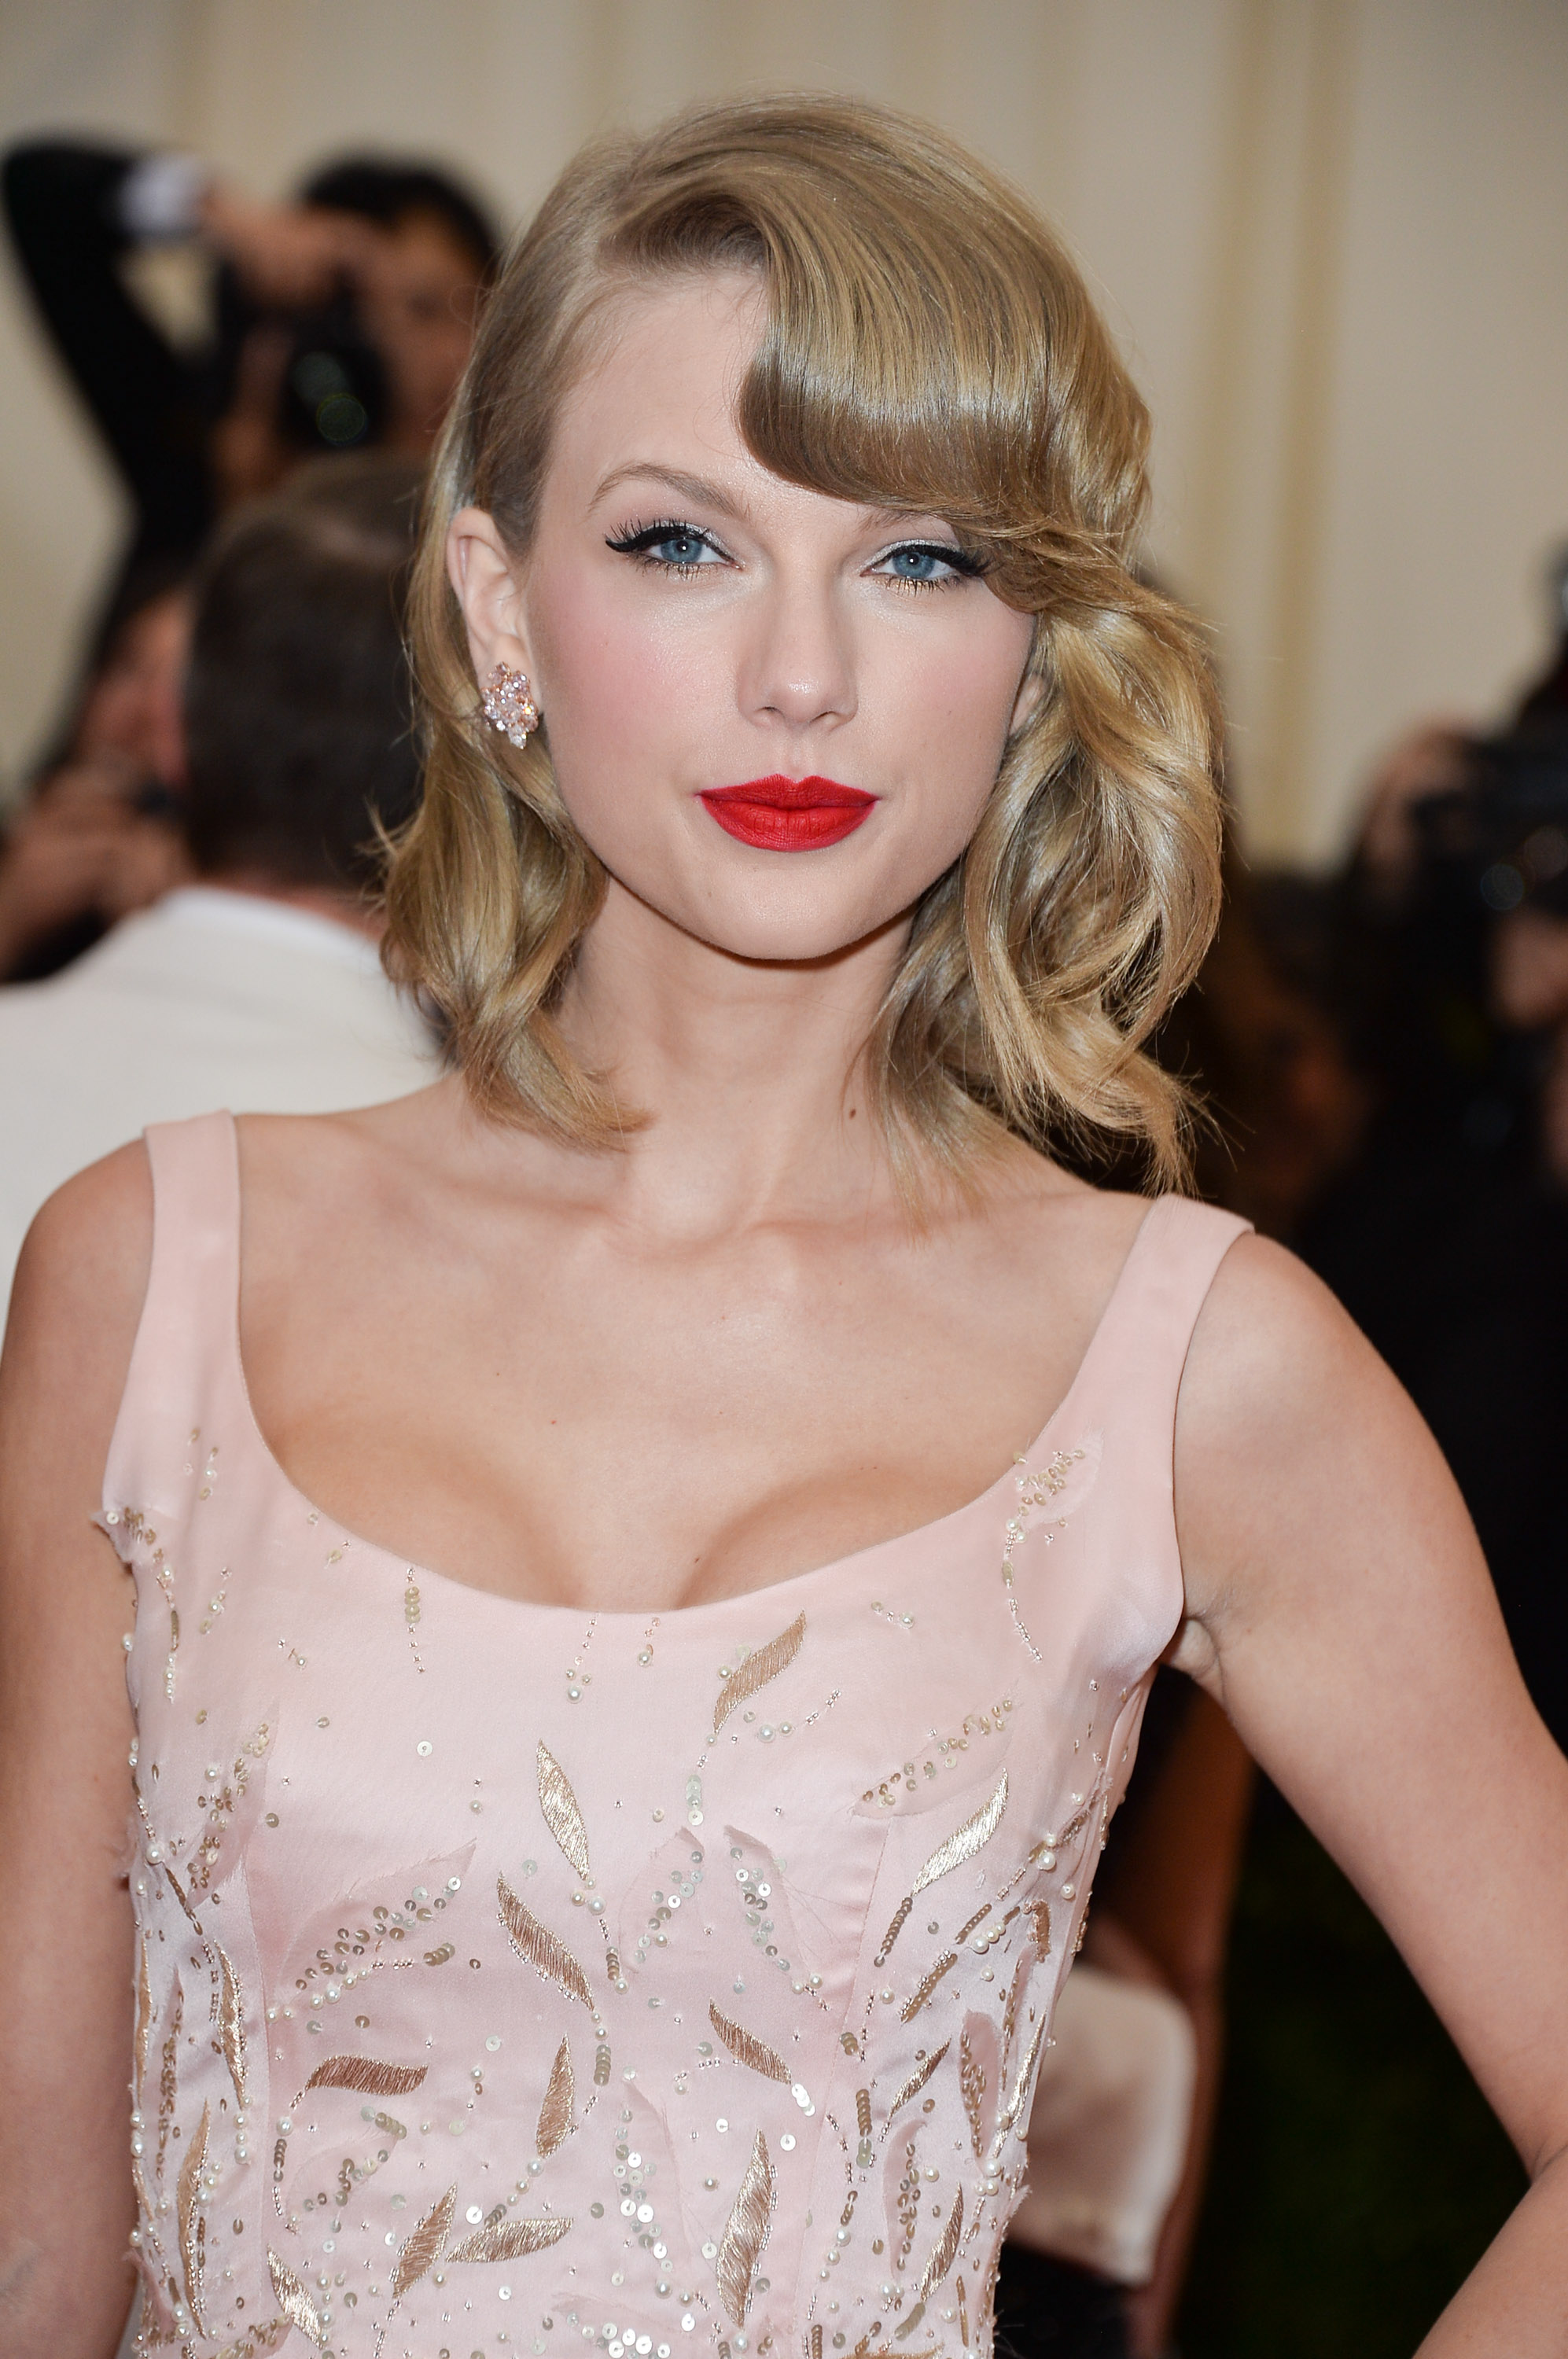 Taylor Swift attends the  Charles James: Beyond Fashion  Costume Institute Gala at the Metropolitan Museum of Art on May 5, 2014 in New York City.